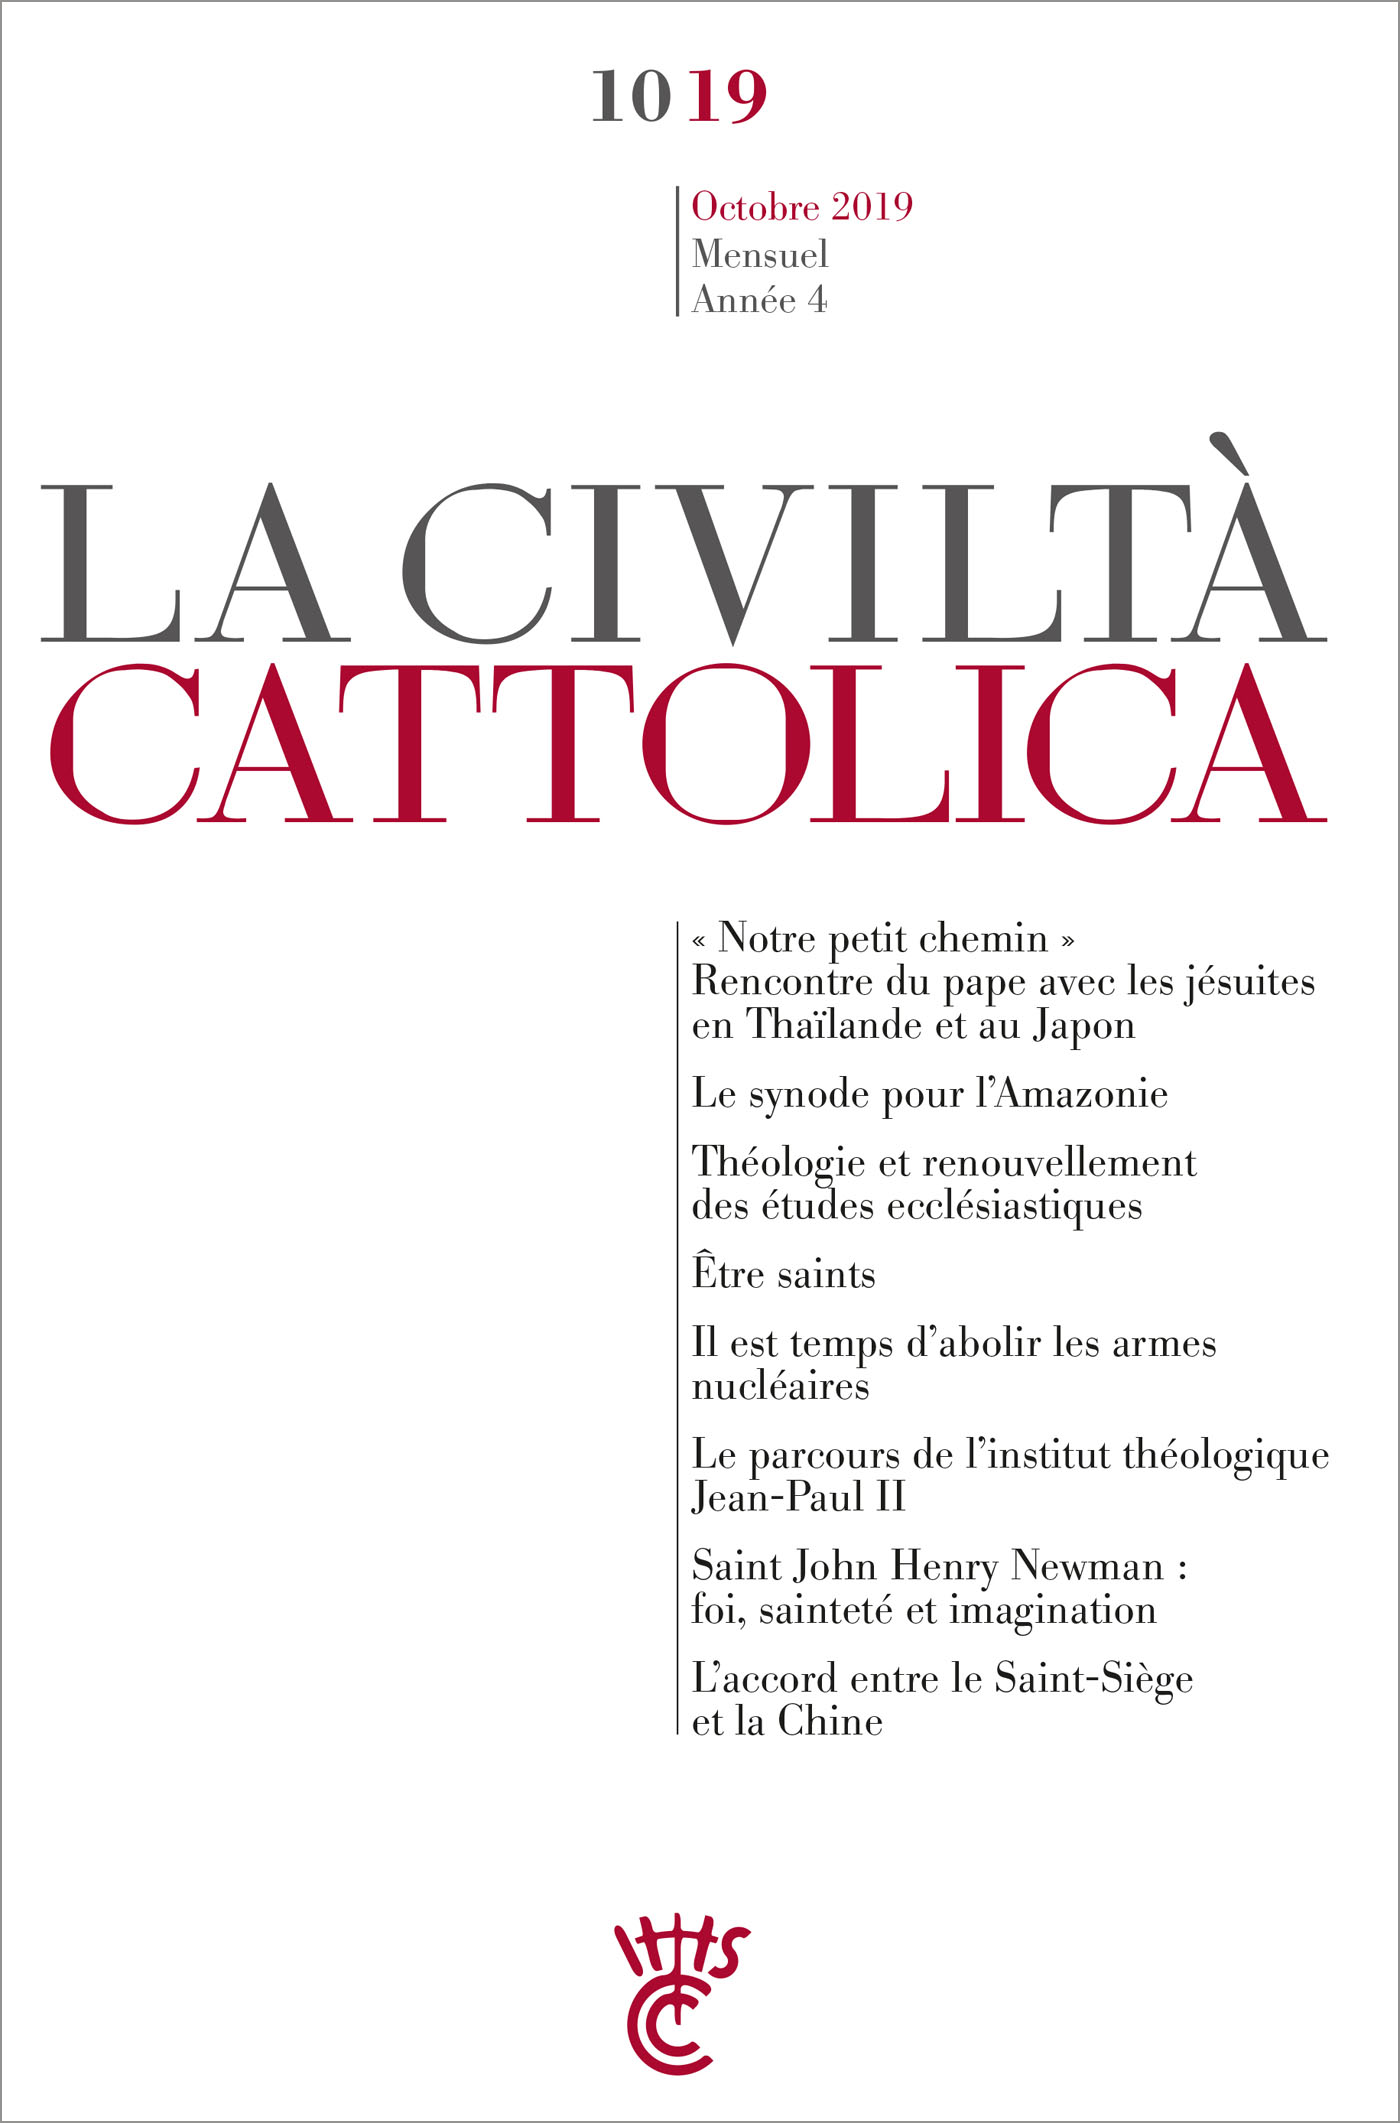 La Civilta Cattolica - Octobre 2019